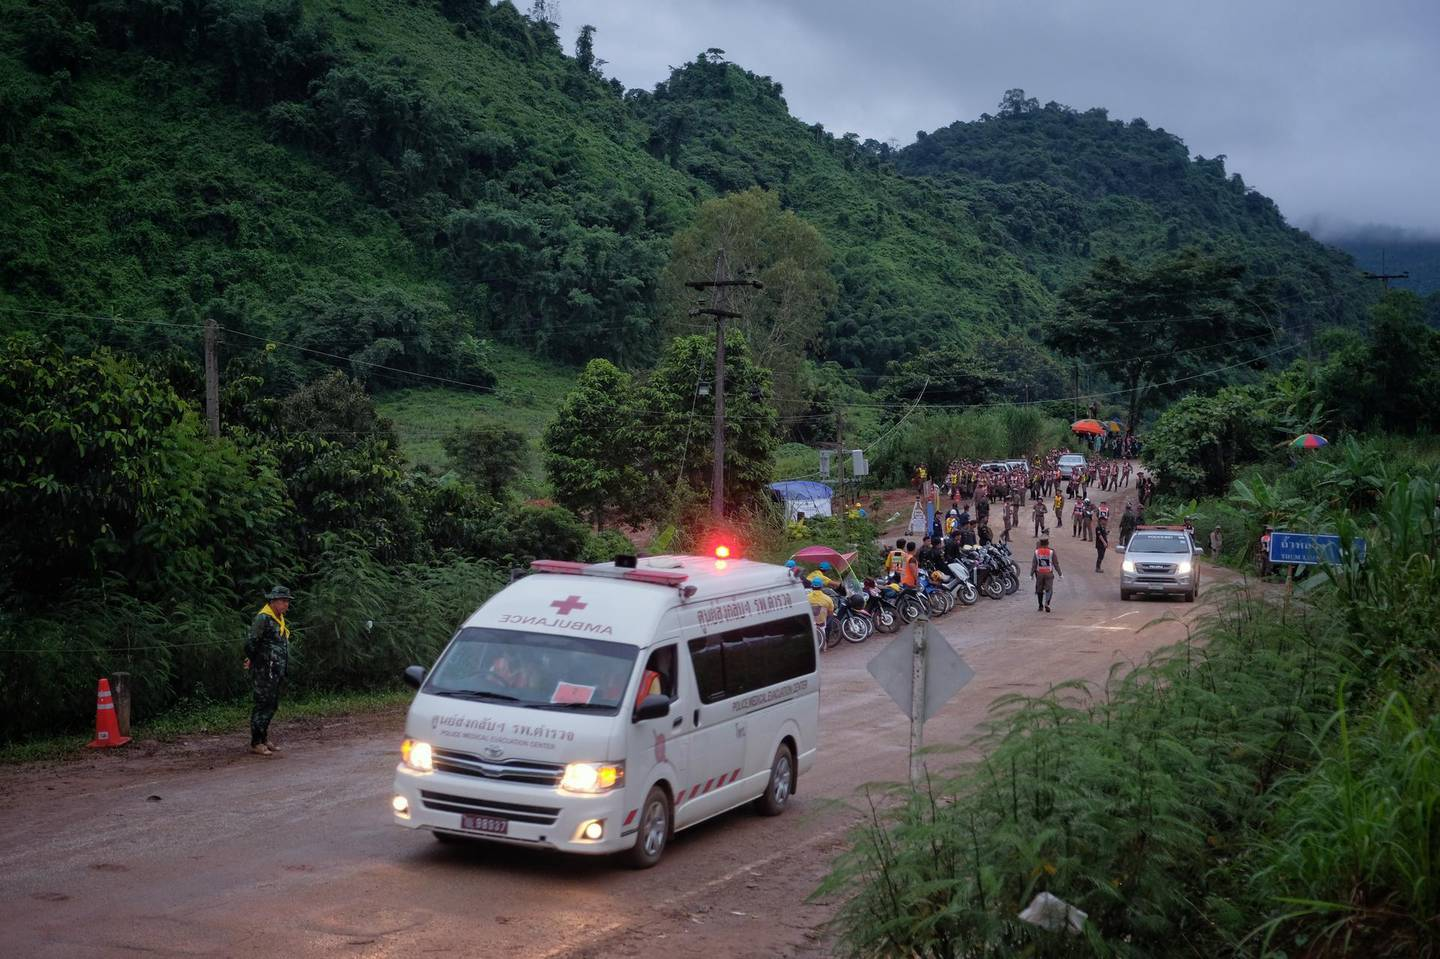 CHIANG RAI, THAILAND - JULY 8: An ambulance carrying one of the boys rescued from Tham Luang Nang Non cave heading towards the hospital on July 8, 2018 in Chiang Rai, Thailand. Divers began an effort to pull the 12 boys and their soccer coach on Sunday morning after they were found alive in the cave at northern Thailand. Videos released by the Thai Navy SEAL shows the boys, aged 11 to 16, and their 25-year-old coach are in good health in Tham Luang Nang Non cave and the challenge now will be to extract the party safely. (Photo by Linh Pham/Getty Images)